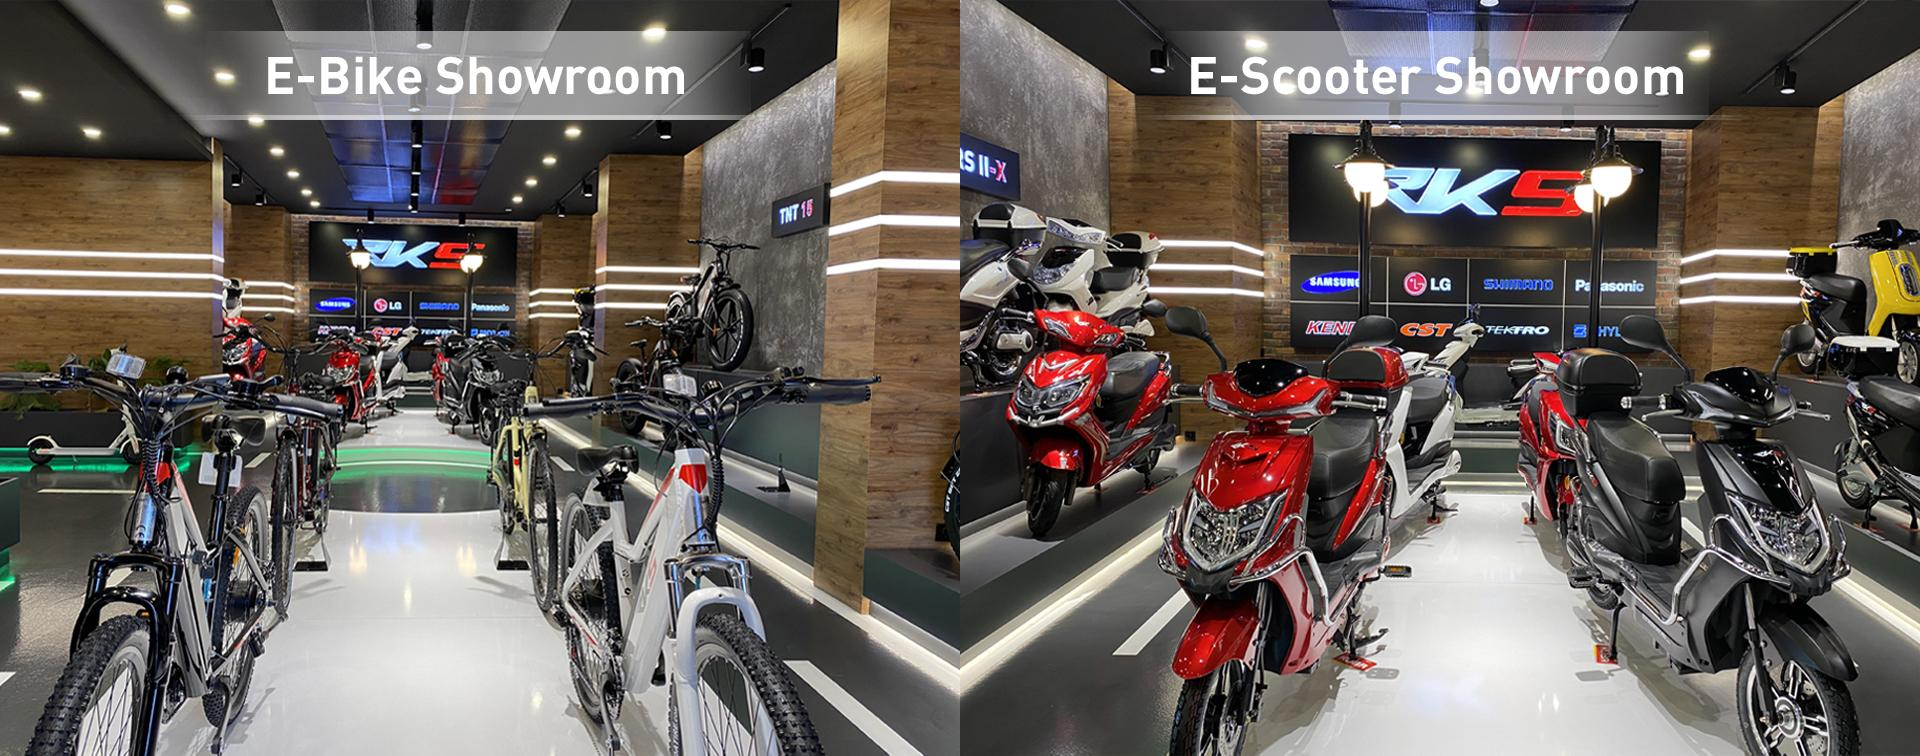 E-Bike / E-Scooter Showroom